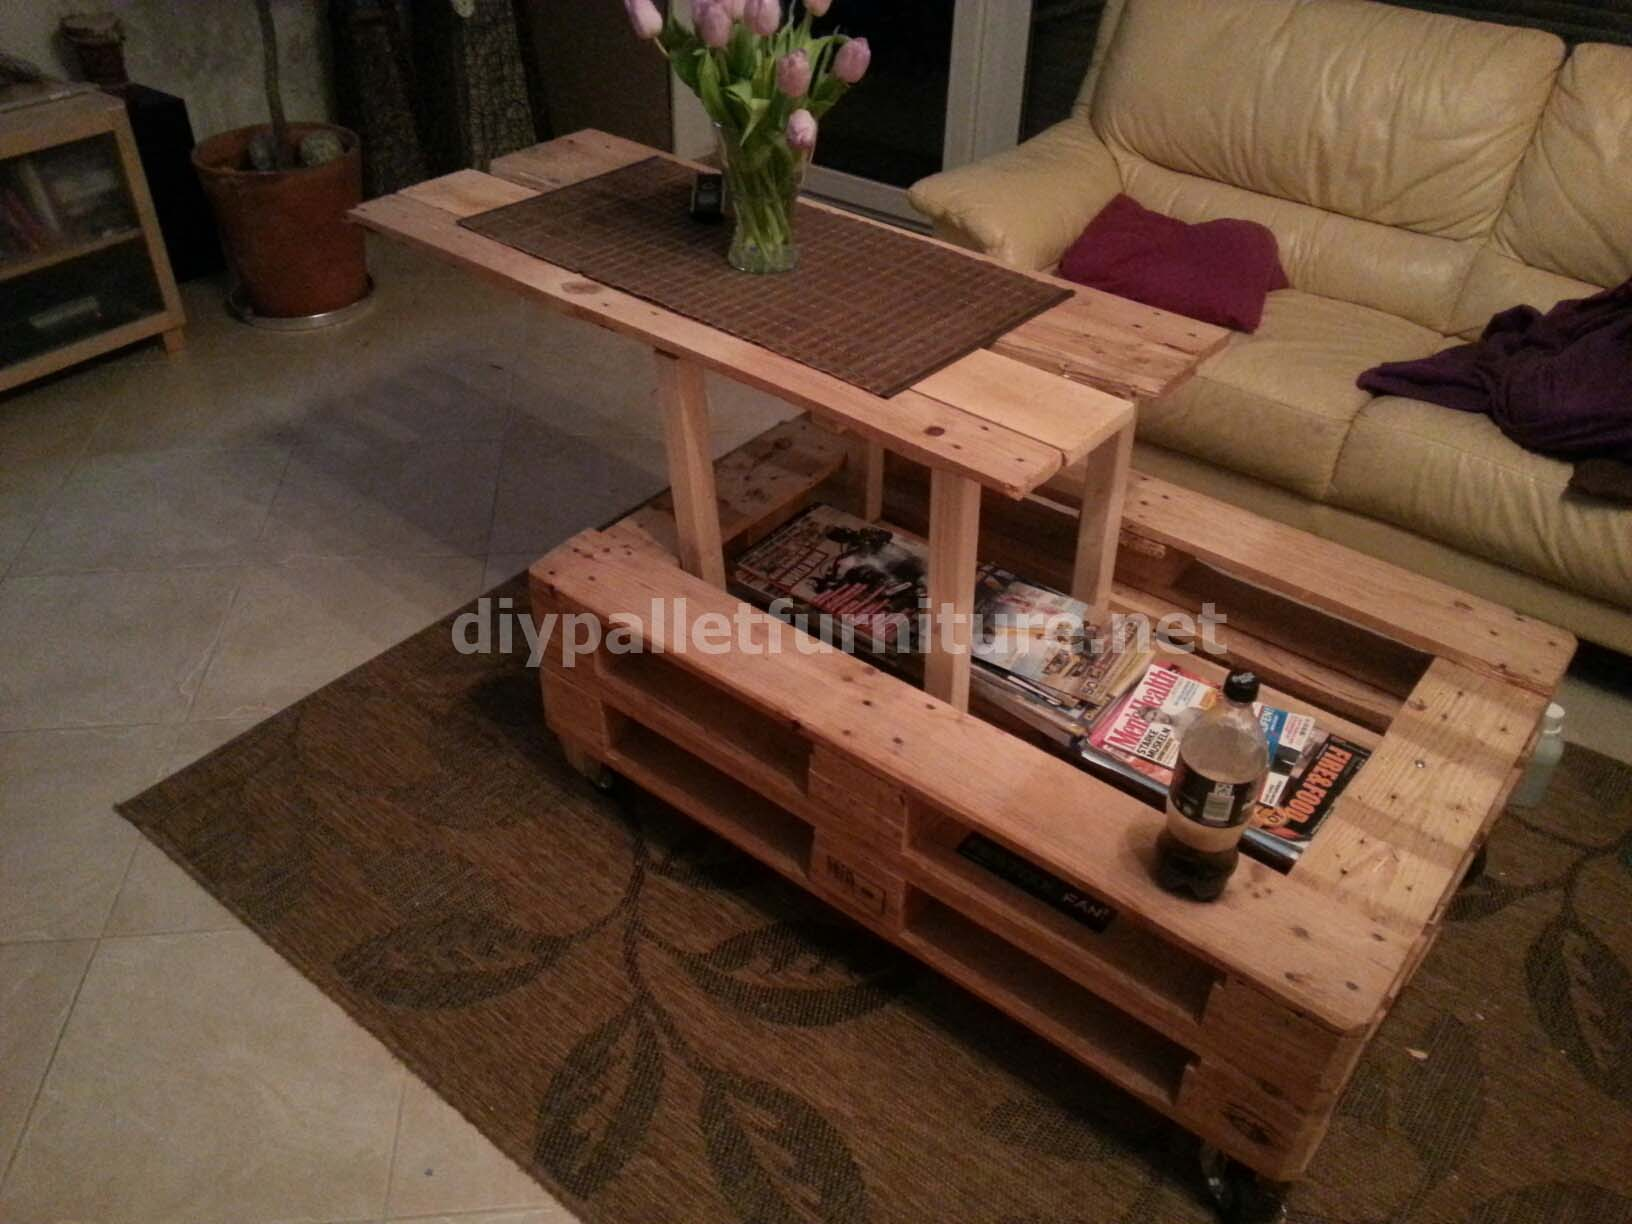 Pneumatic pallet tablediy pallet furniture diy pallet for Palette bois deco